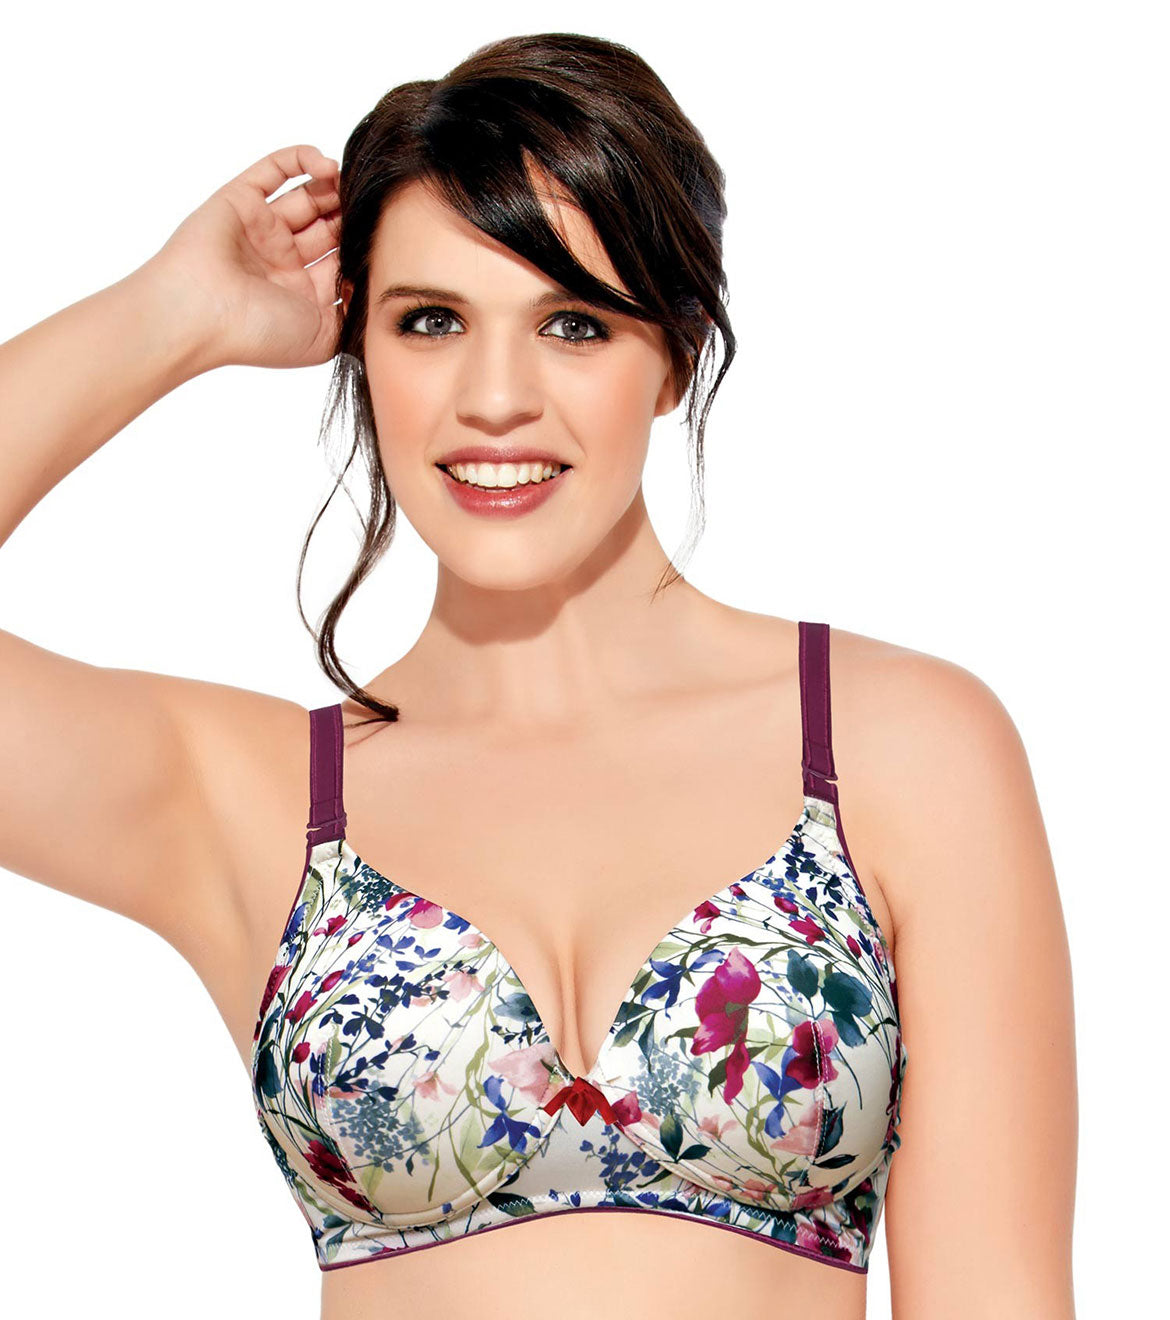 Enamor F065 Full Support T-Shirt Bra - Padded • Wirefree • Detachable Strap